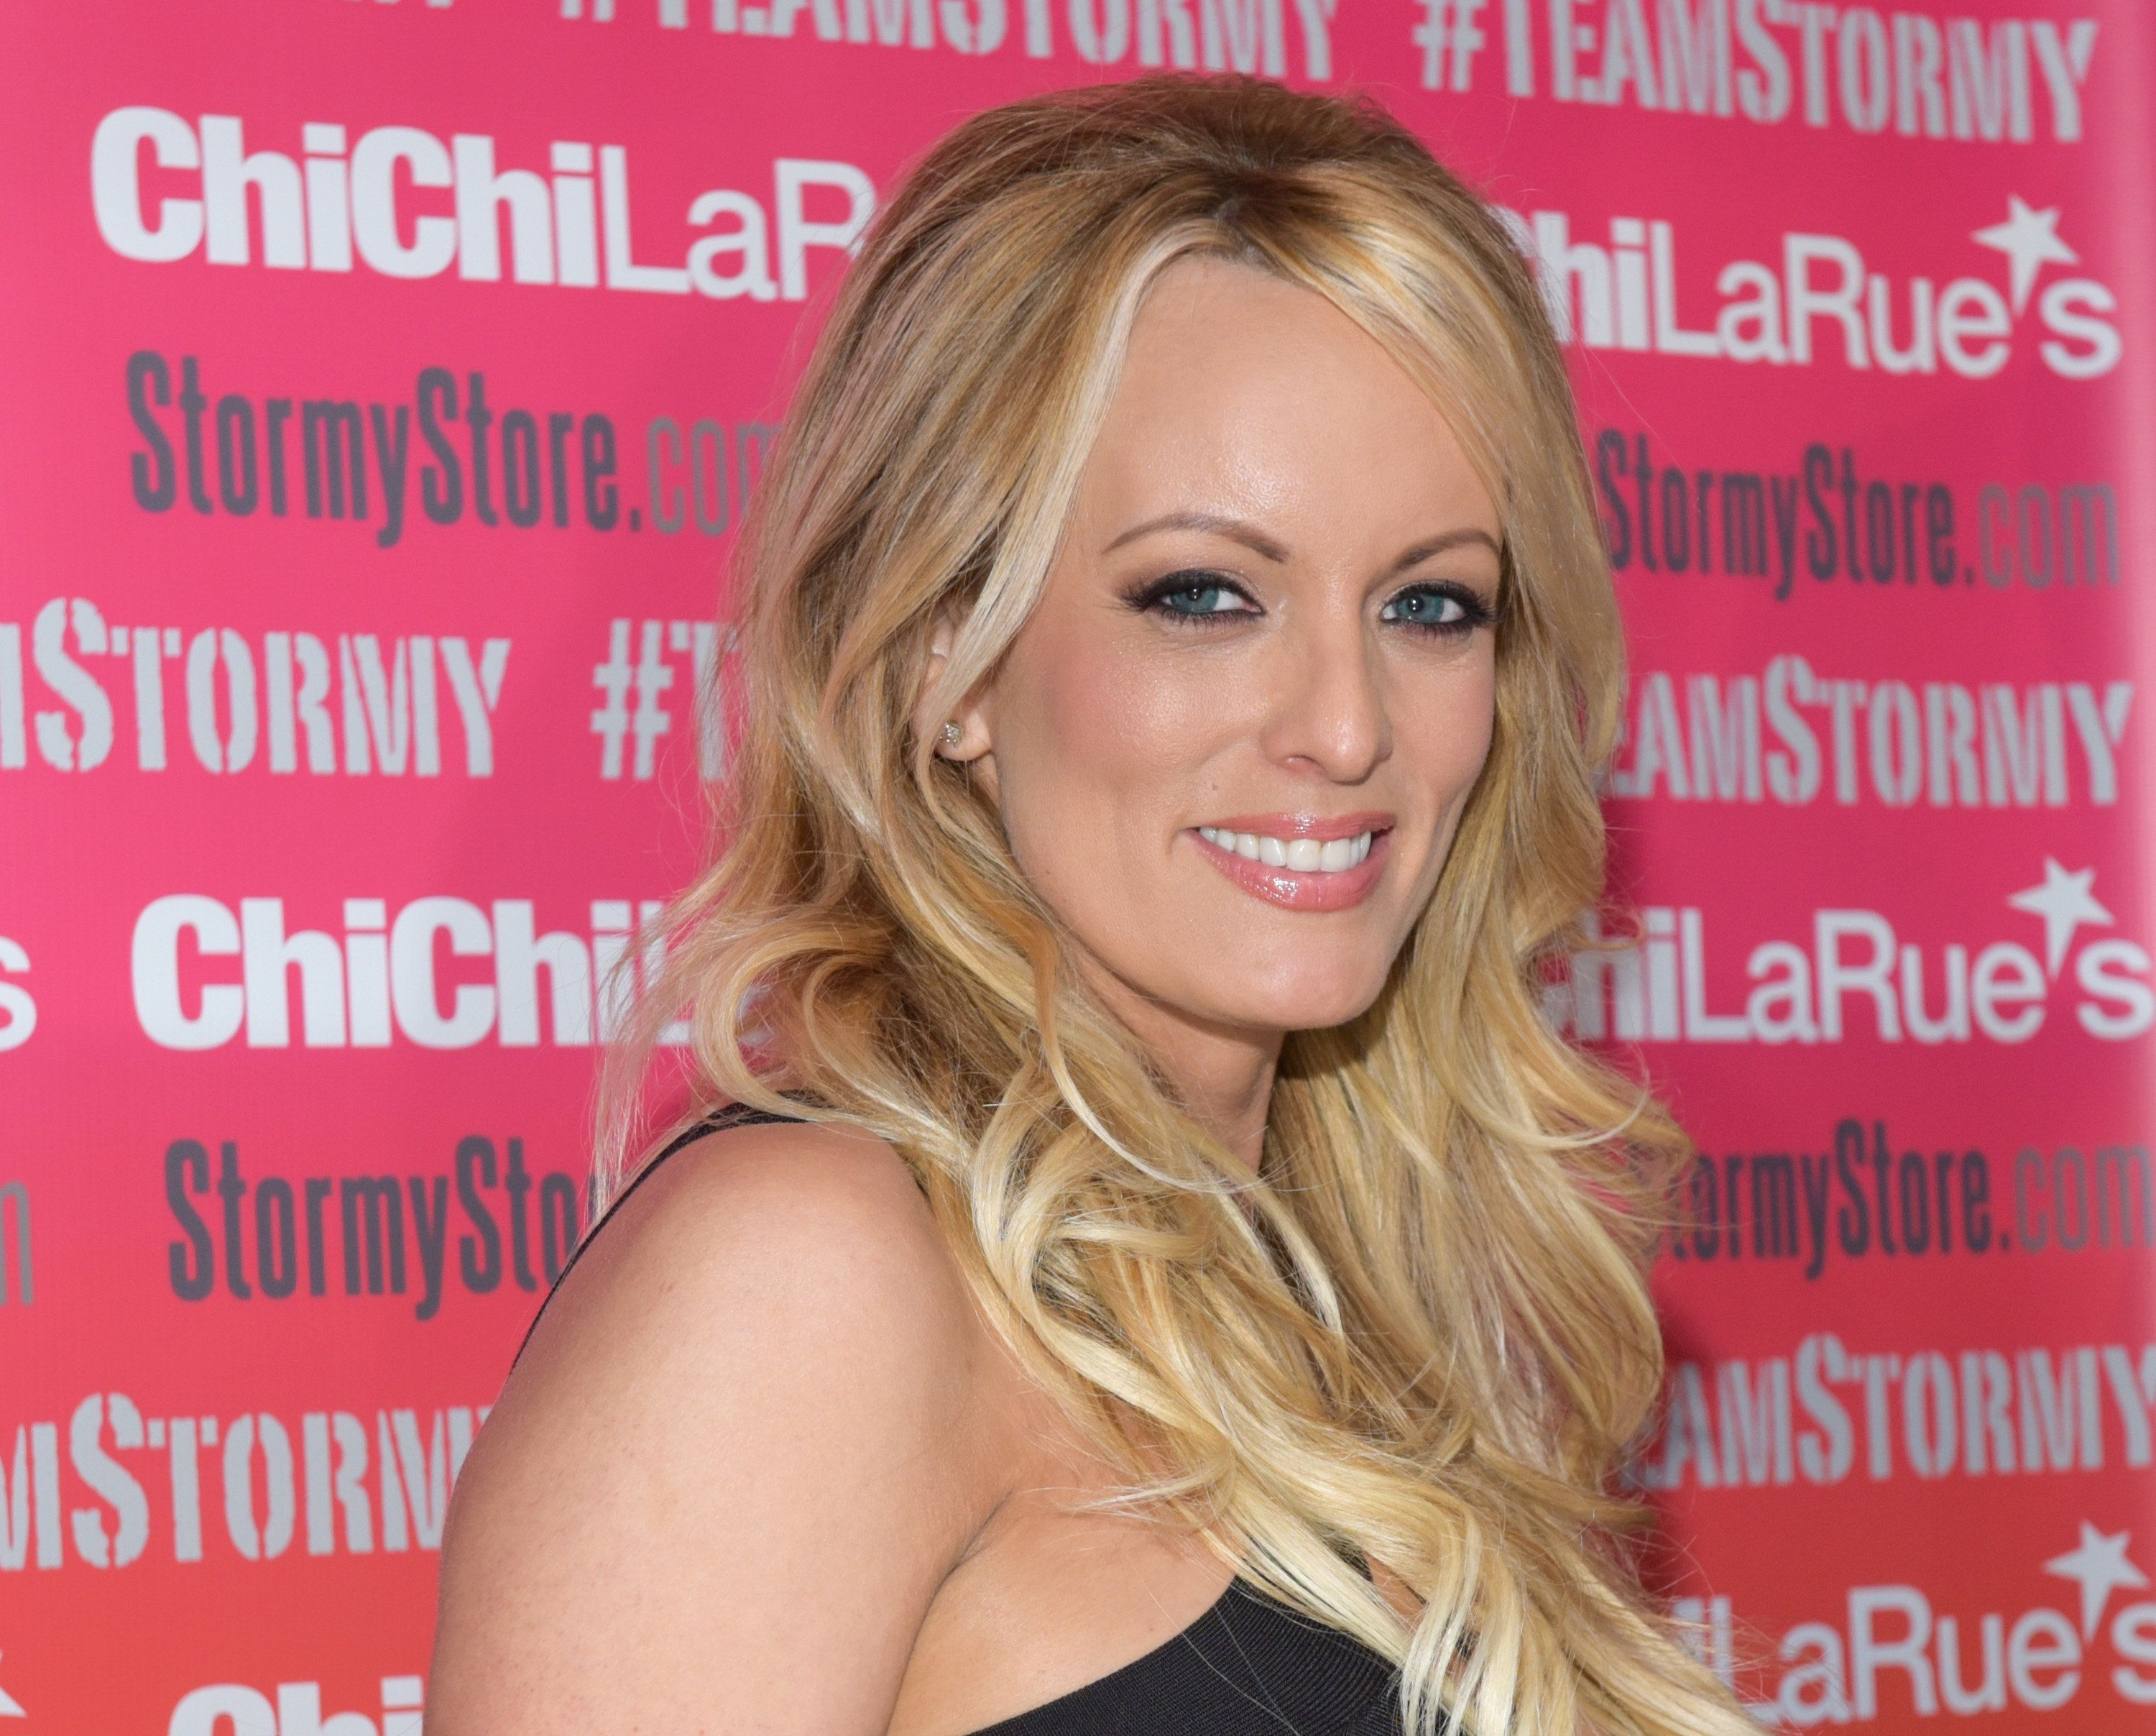 WEST HOLLYWOOD, CA - MAY 23:  Stormy Daniels attends a fan meet and greet at Chi Chi LaRue's on May 23, 2018 in West Hollywood, California.  (Photo by Tara Ziemba/Getty Images)